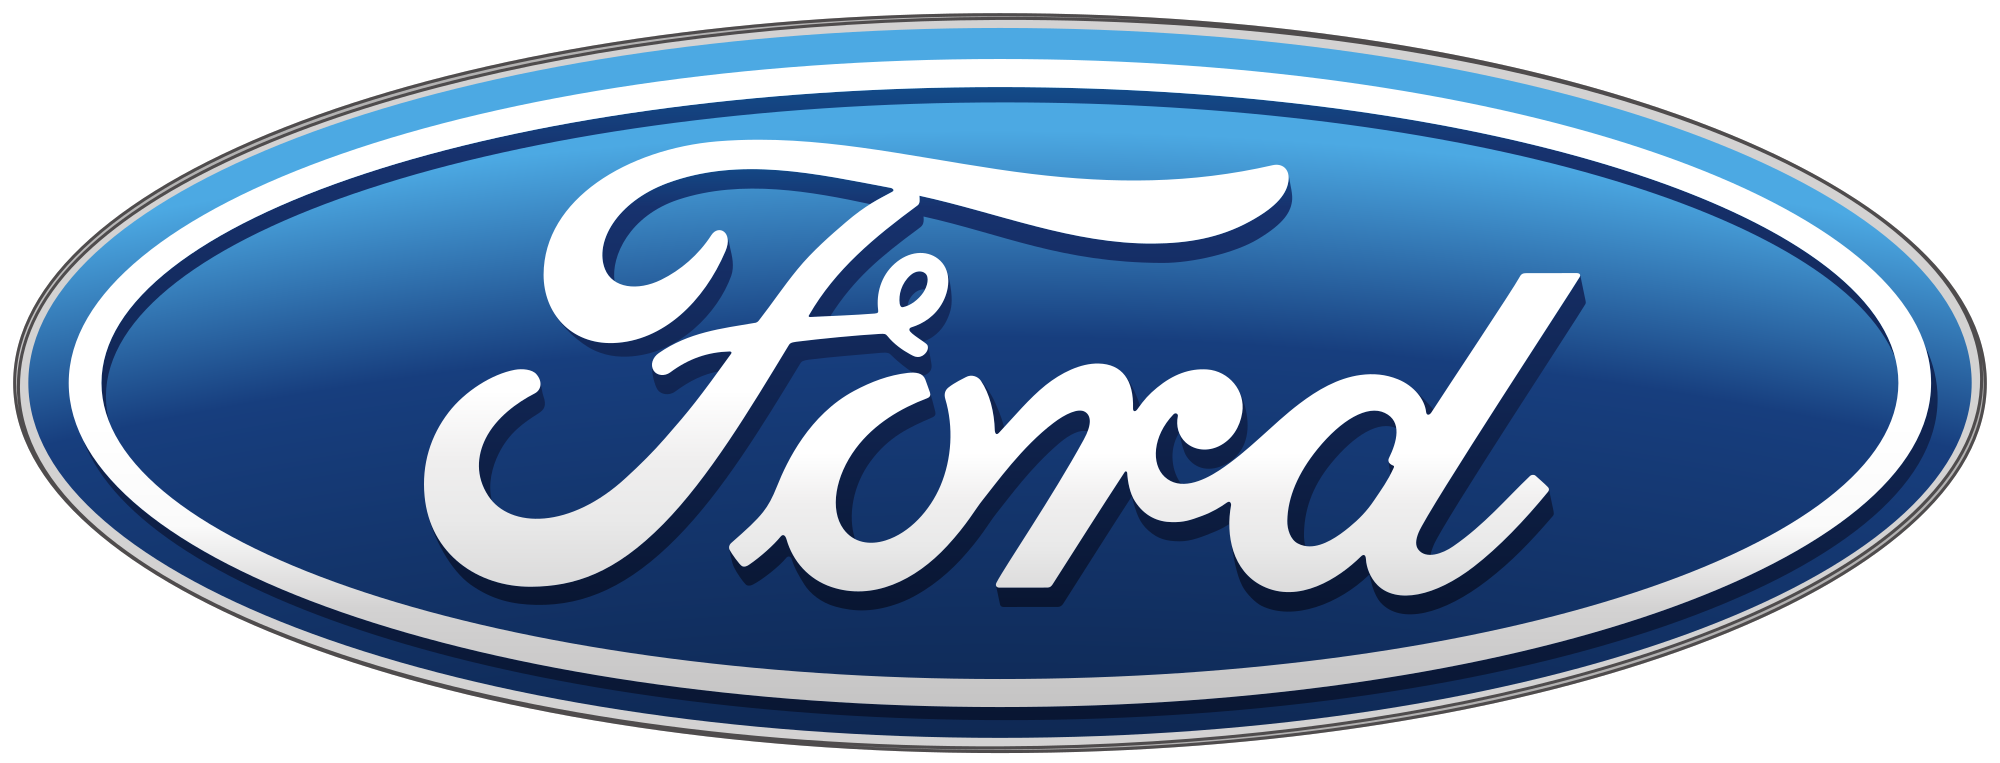 Ford Lg.png